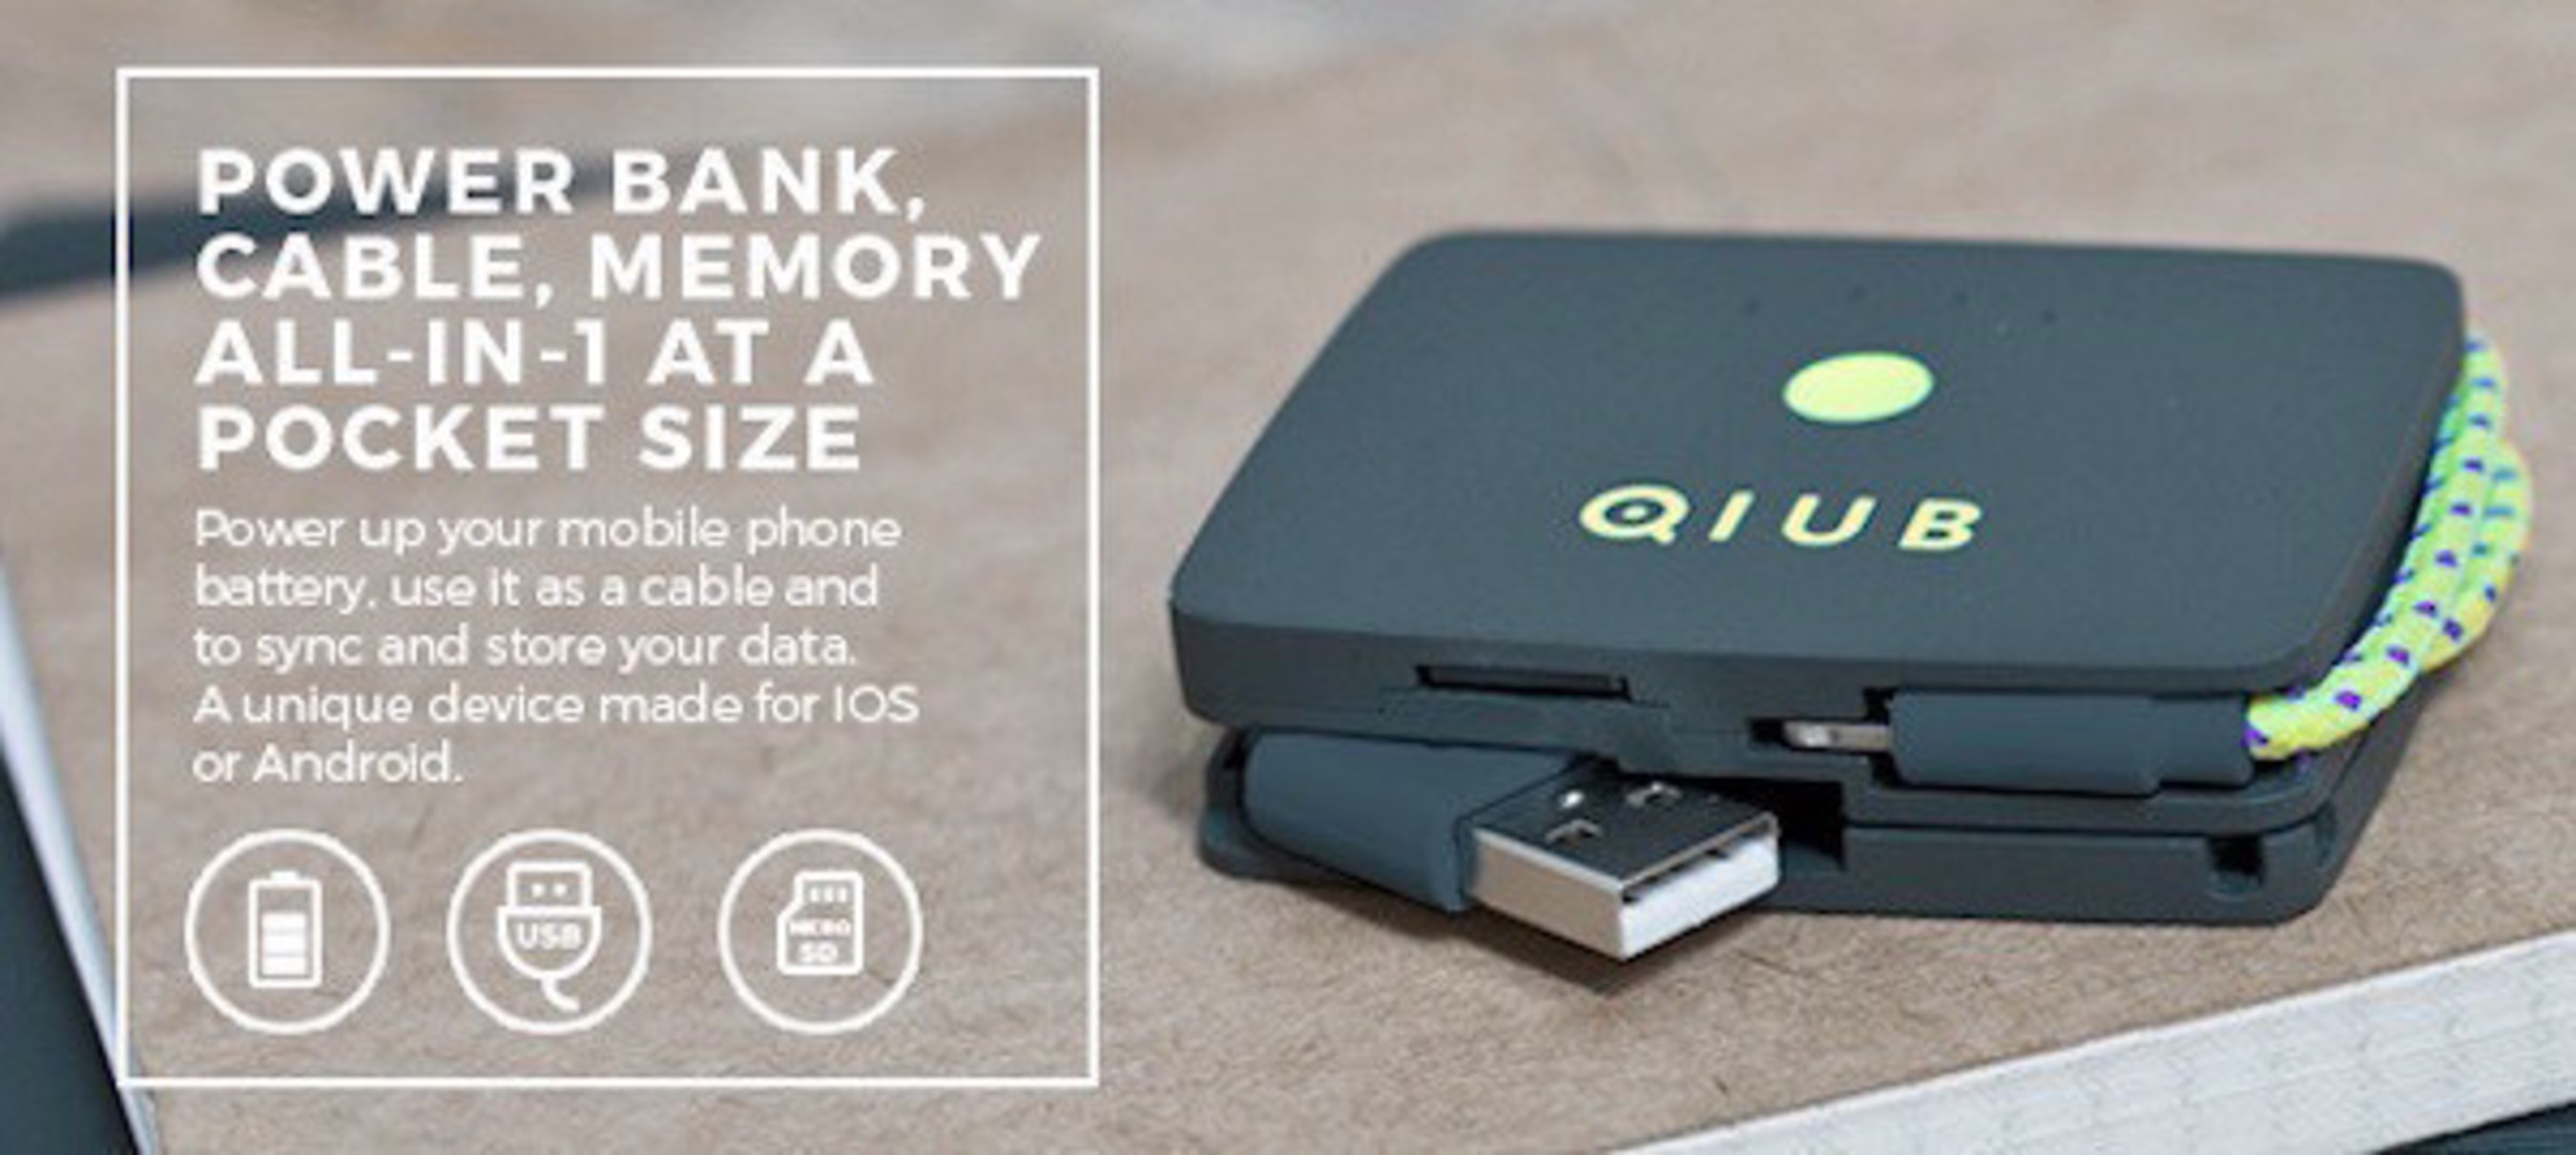 Compared to regular power banks, QIUB is a multi functional device with an integrated cable and memory card reader that replaces the need to carry multiple phone accessories. QIUBcan read any Micro-SD card up to 64GB and is compatible with any laptop. QIUB is also perfect place to keep safe your Micro-SD memory card.